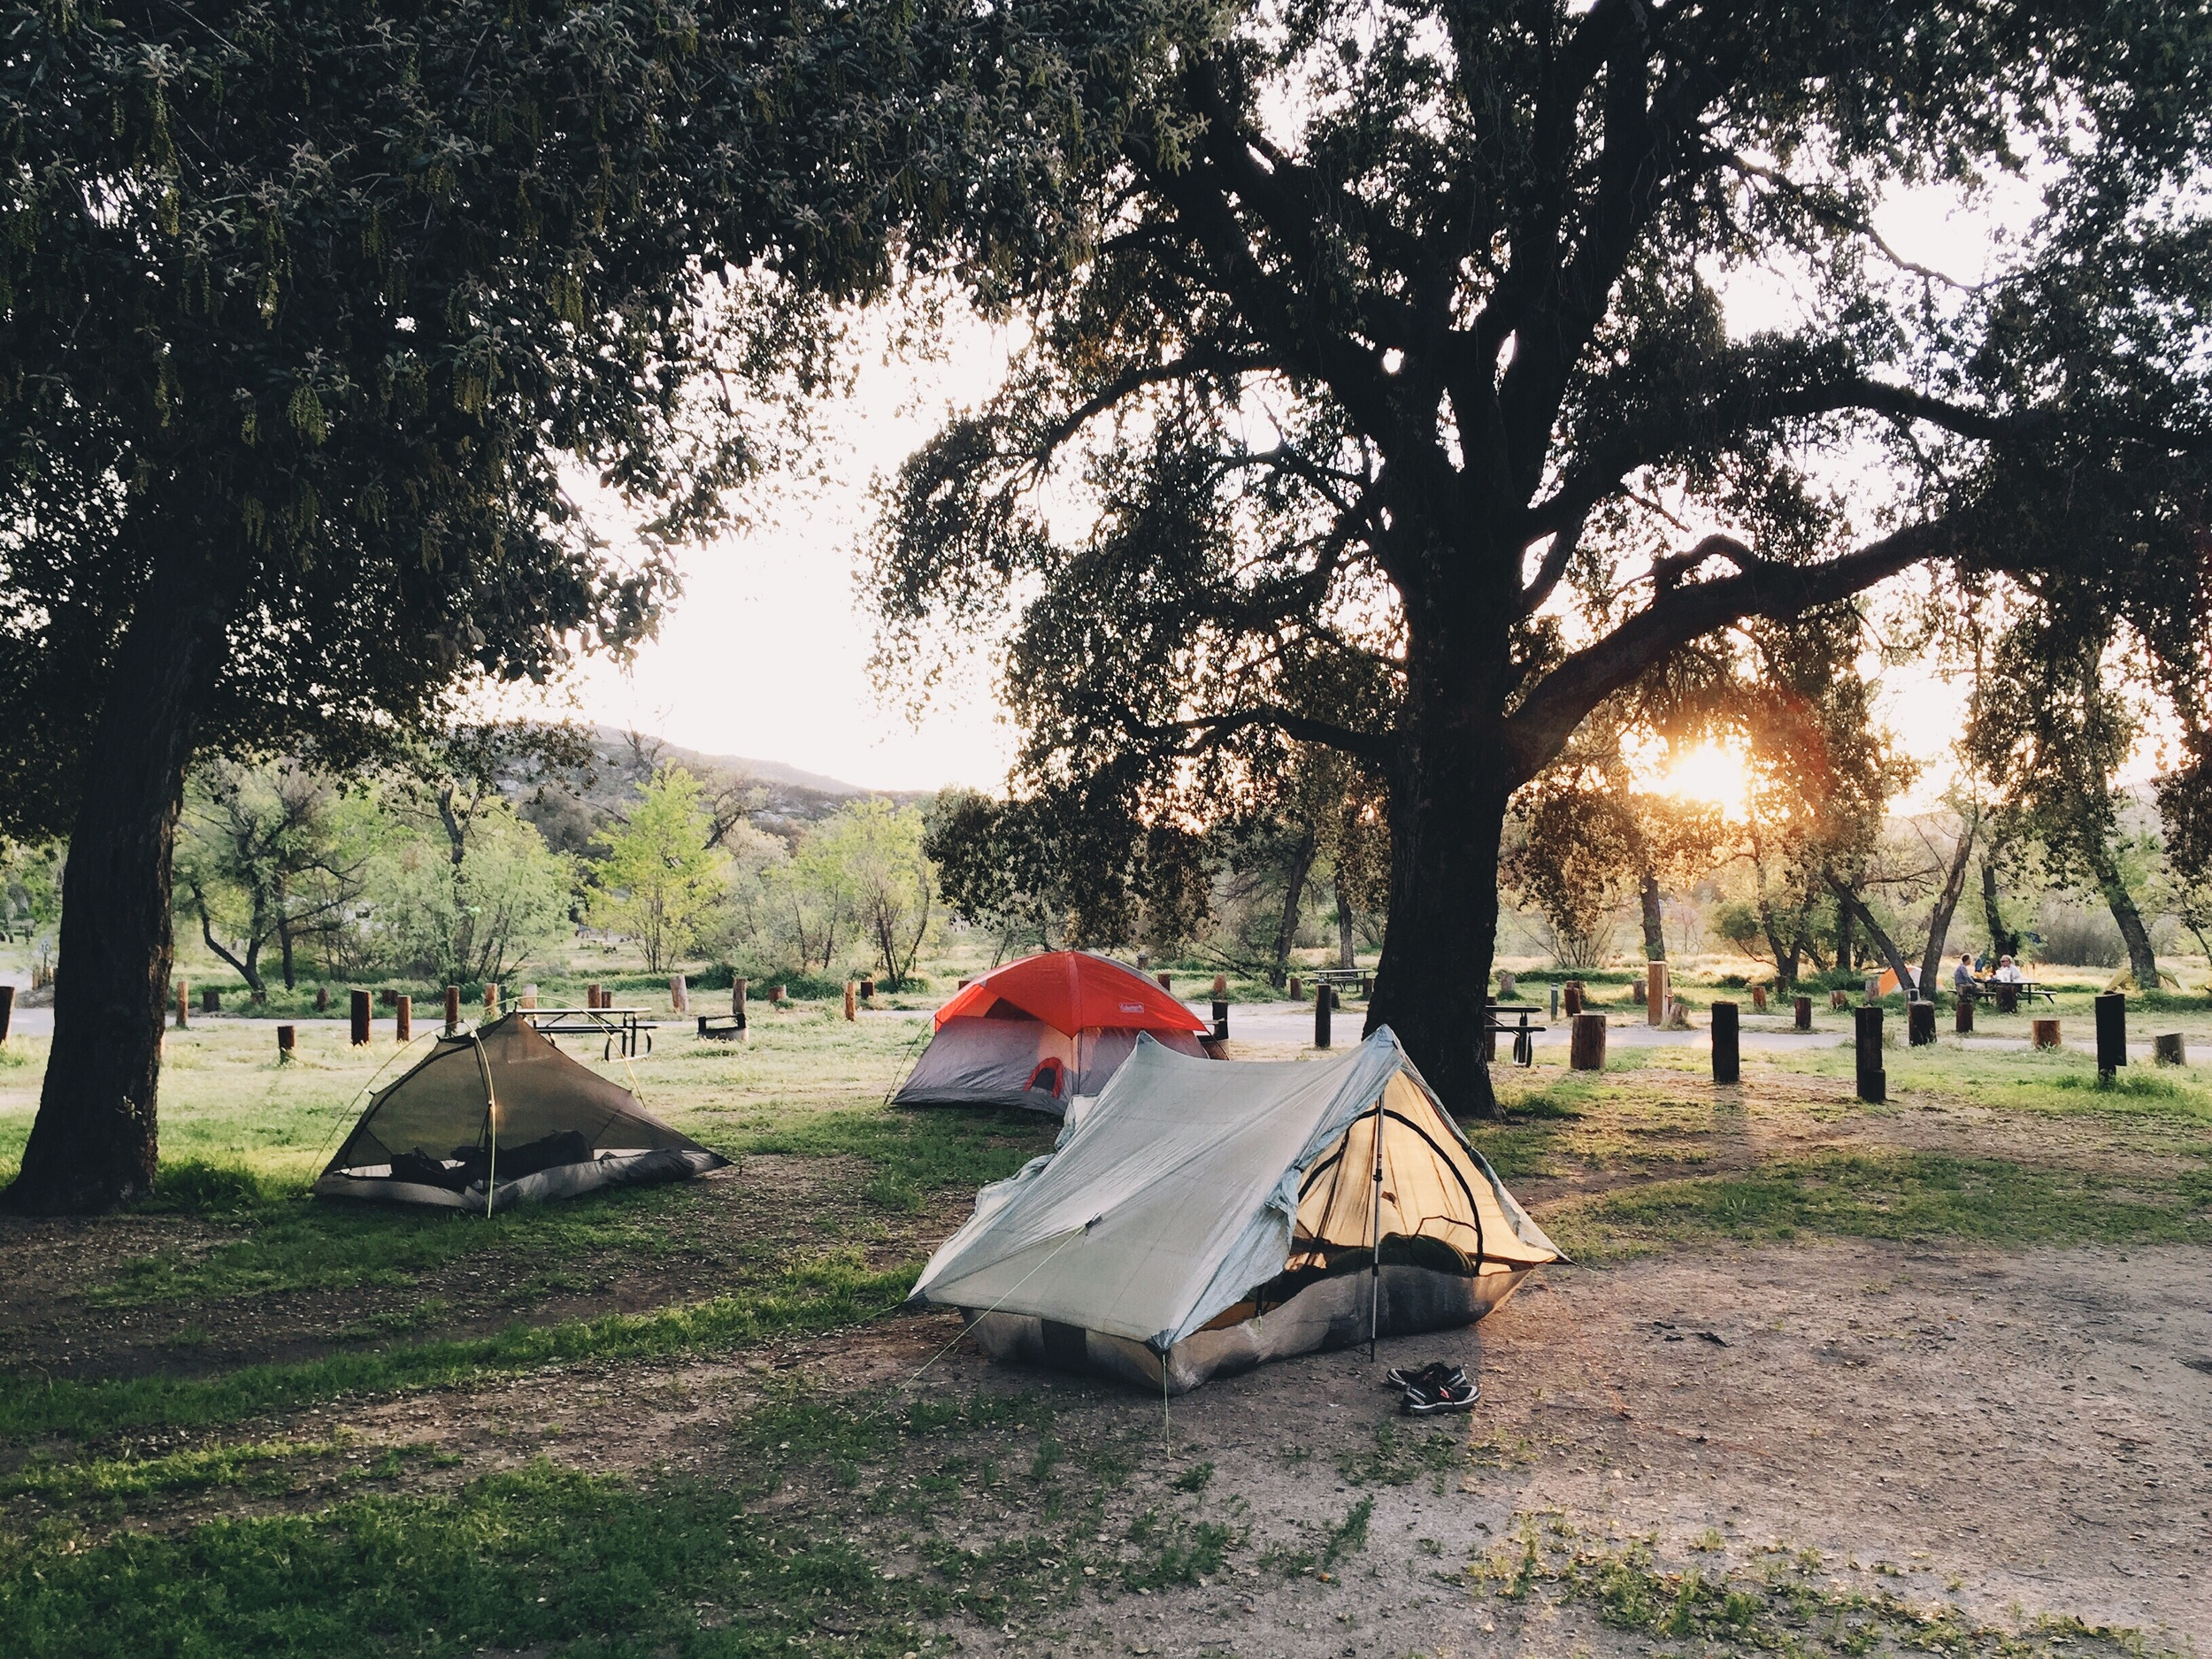 Campsite at Lake Morena.